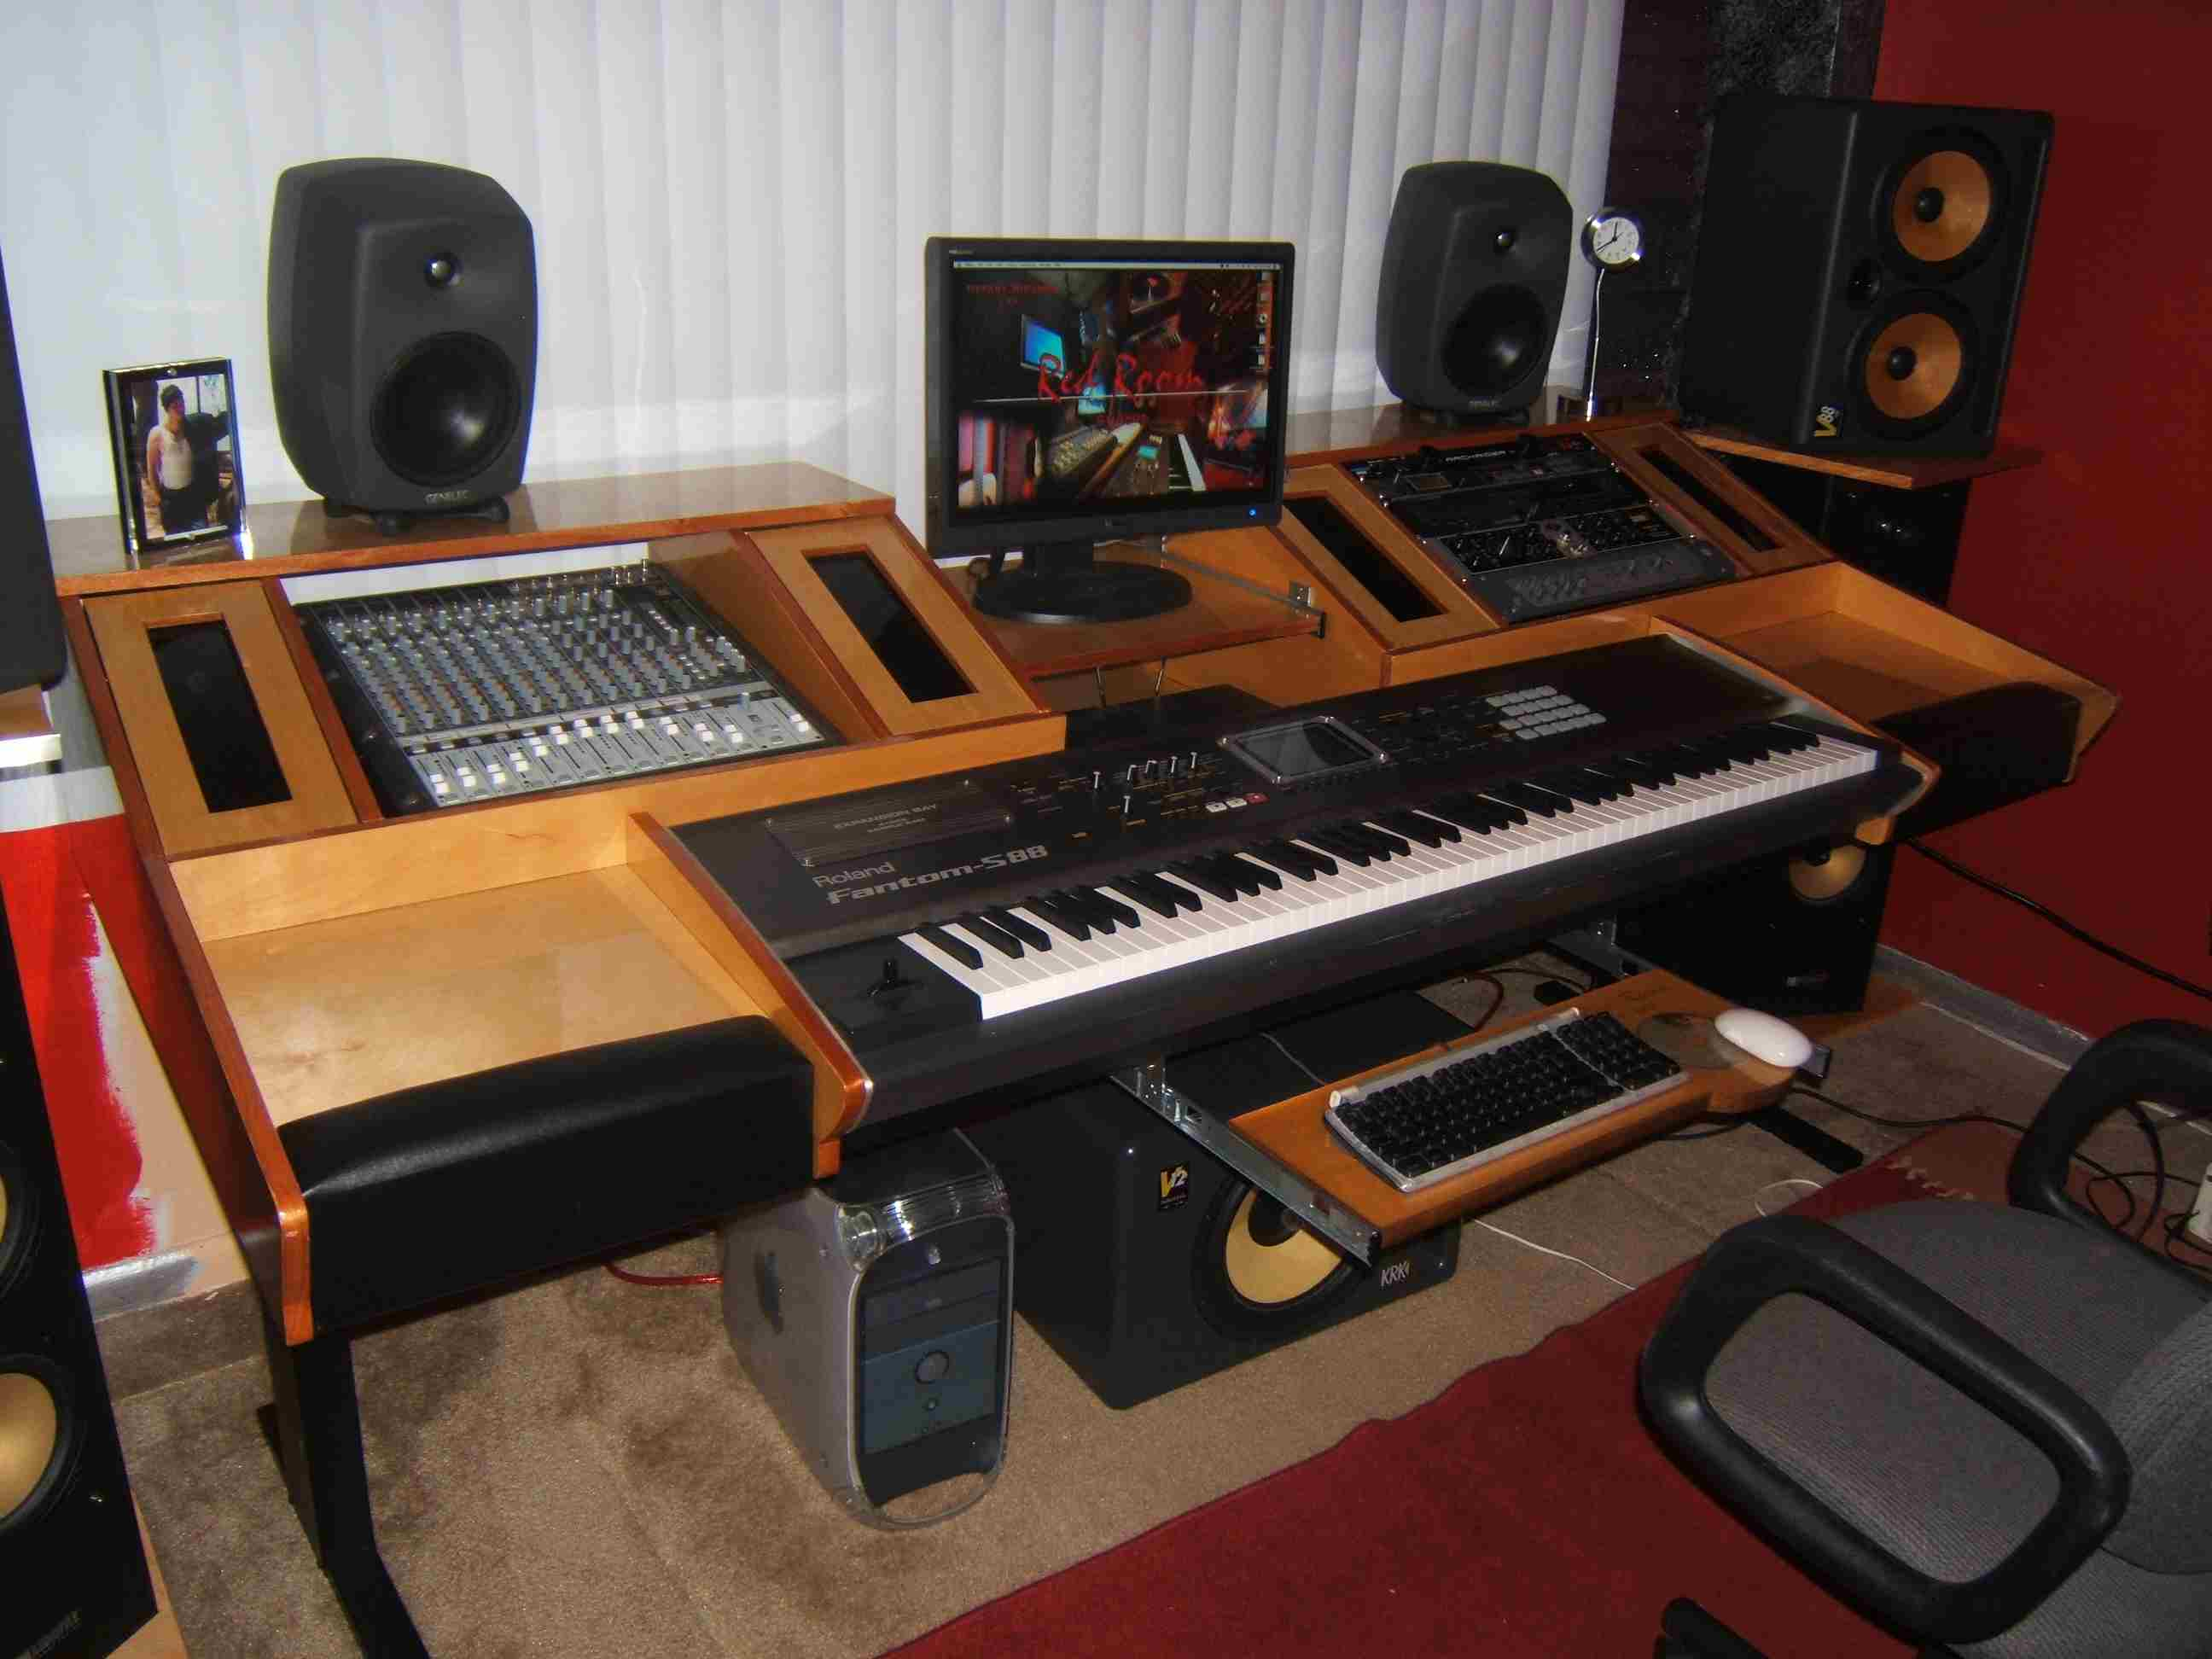 argosy recording studio furniture